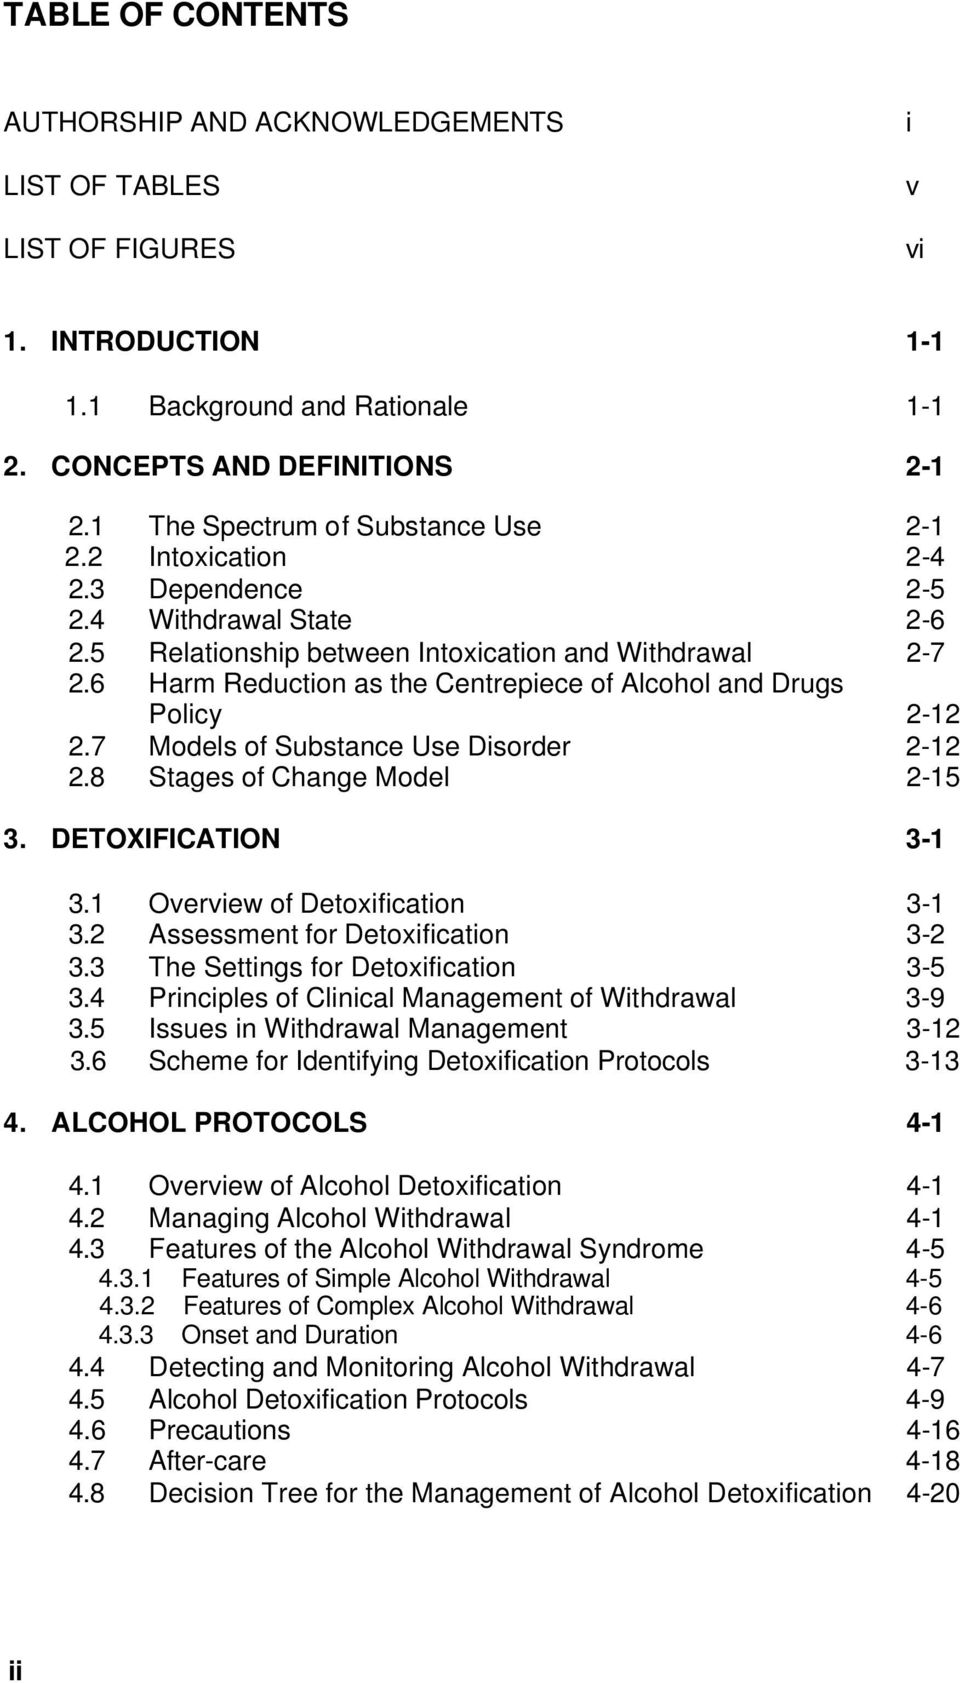 6 Harm Reduction as the Centrepiece of Alcohol and Drugs Policy 2-12 2.7 Models of Substance Use Disorder 2-12 2.8 Stages of Change Model 2-15 3. DETOXIFICATION 3-1 3.